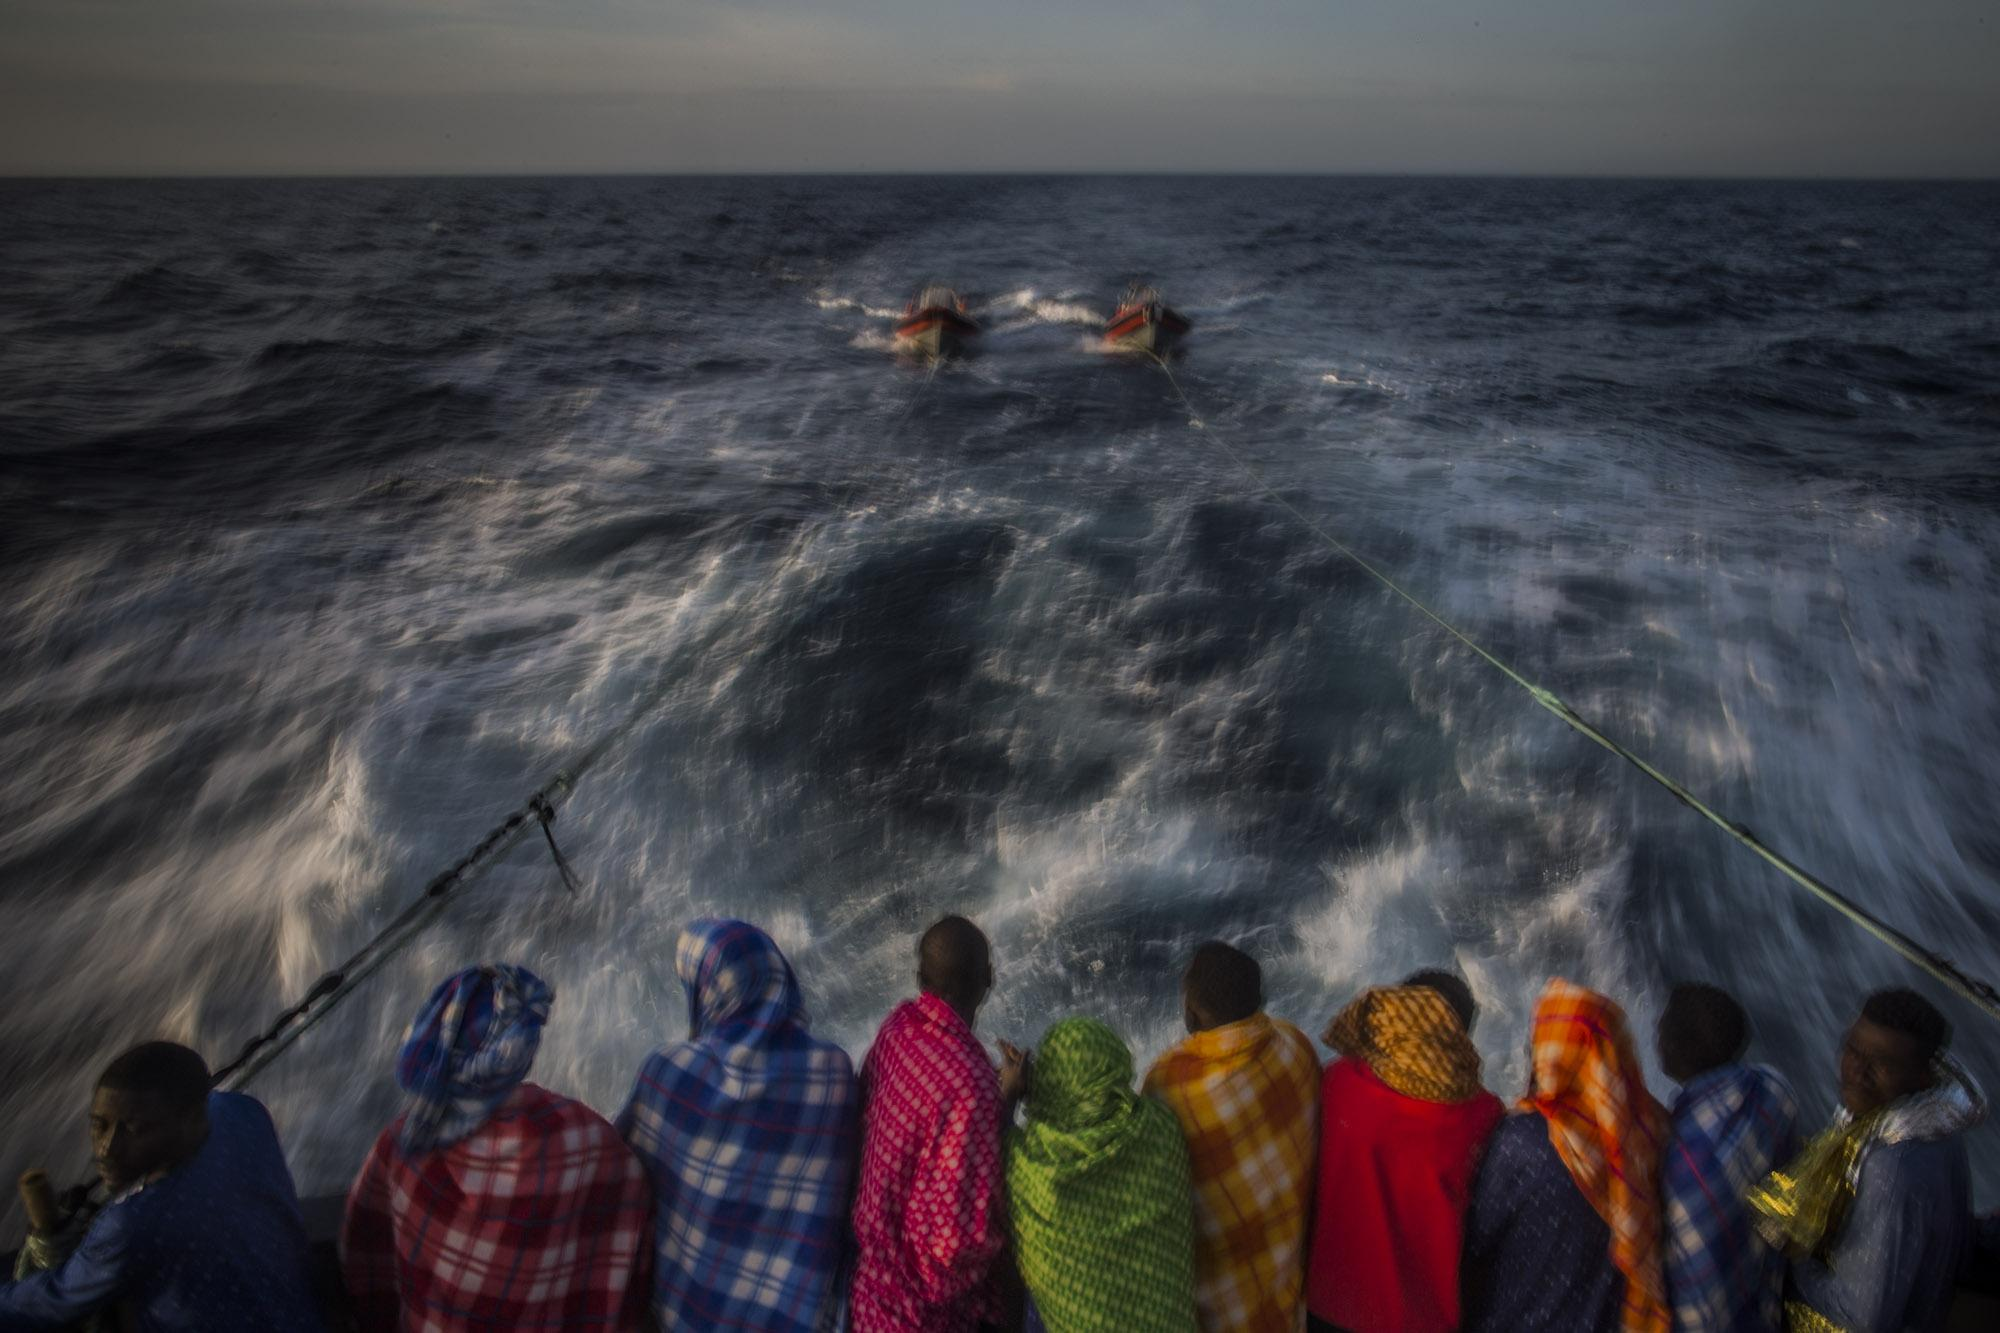 Migrants from different African nationalities rest aboard a Spanish NGO Open Arms rescue ship, as the vessel heads to the Italian island of Lampedusa, early Sunday, March 5, 2017. When I shot this pictture, a team of aid workers had already rescued more than 800 people, during a 2-weeks rescue mission in international waters, off the Libyan coast, as thousands of migrants, mostly Africans but also from Middle East and South Asia, were leaving Libya and trying to reach Europe aboard overcrowded and precarious rubber and wooden boats that could had never crossed the Mediterranean successfully. (© Santi Palacios)